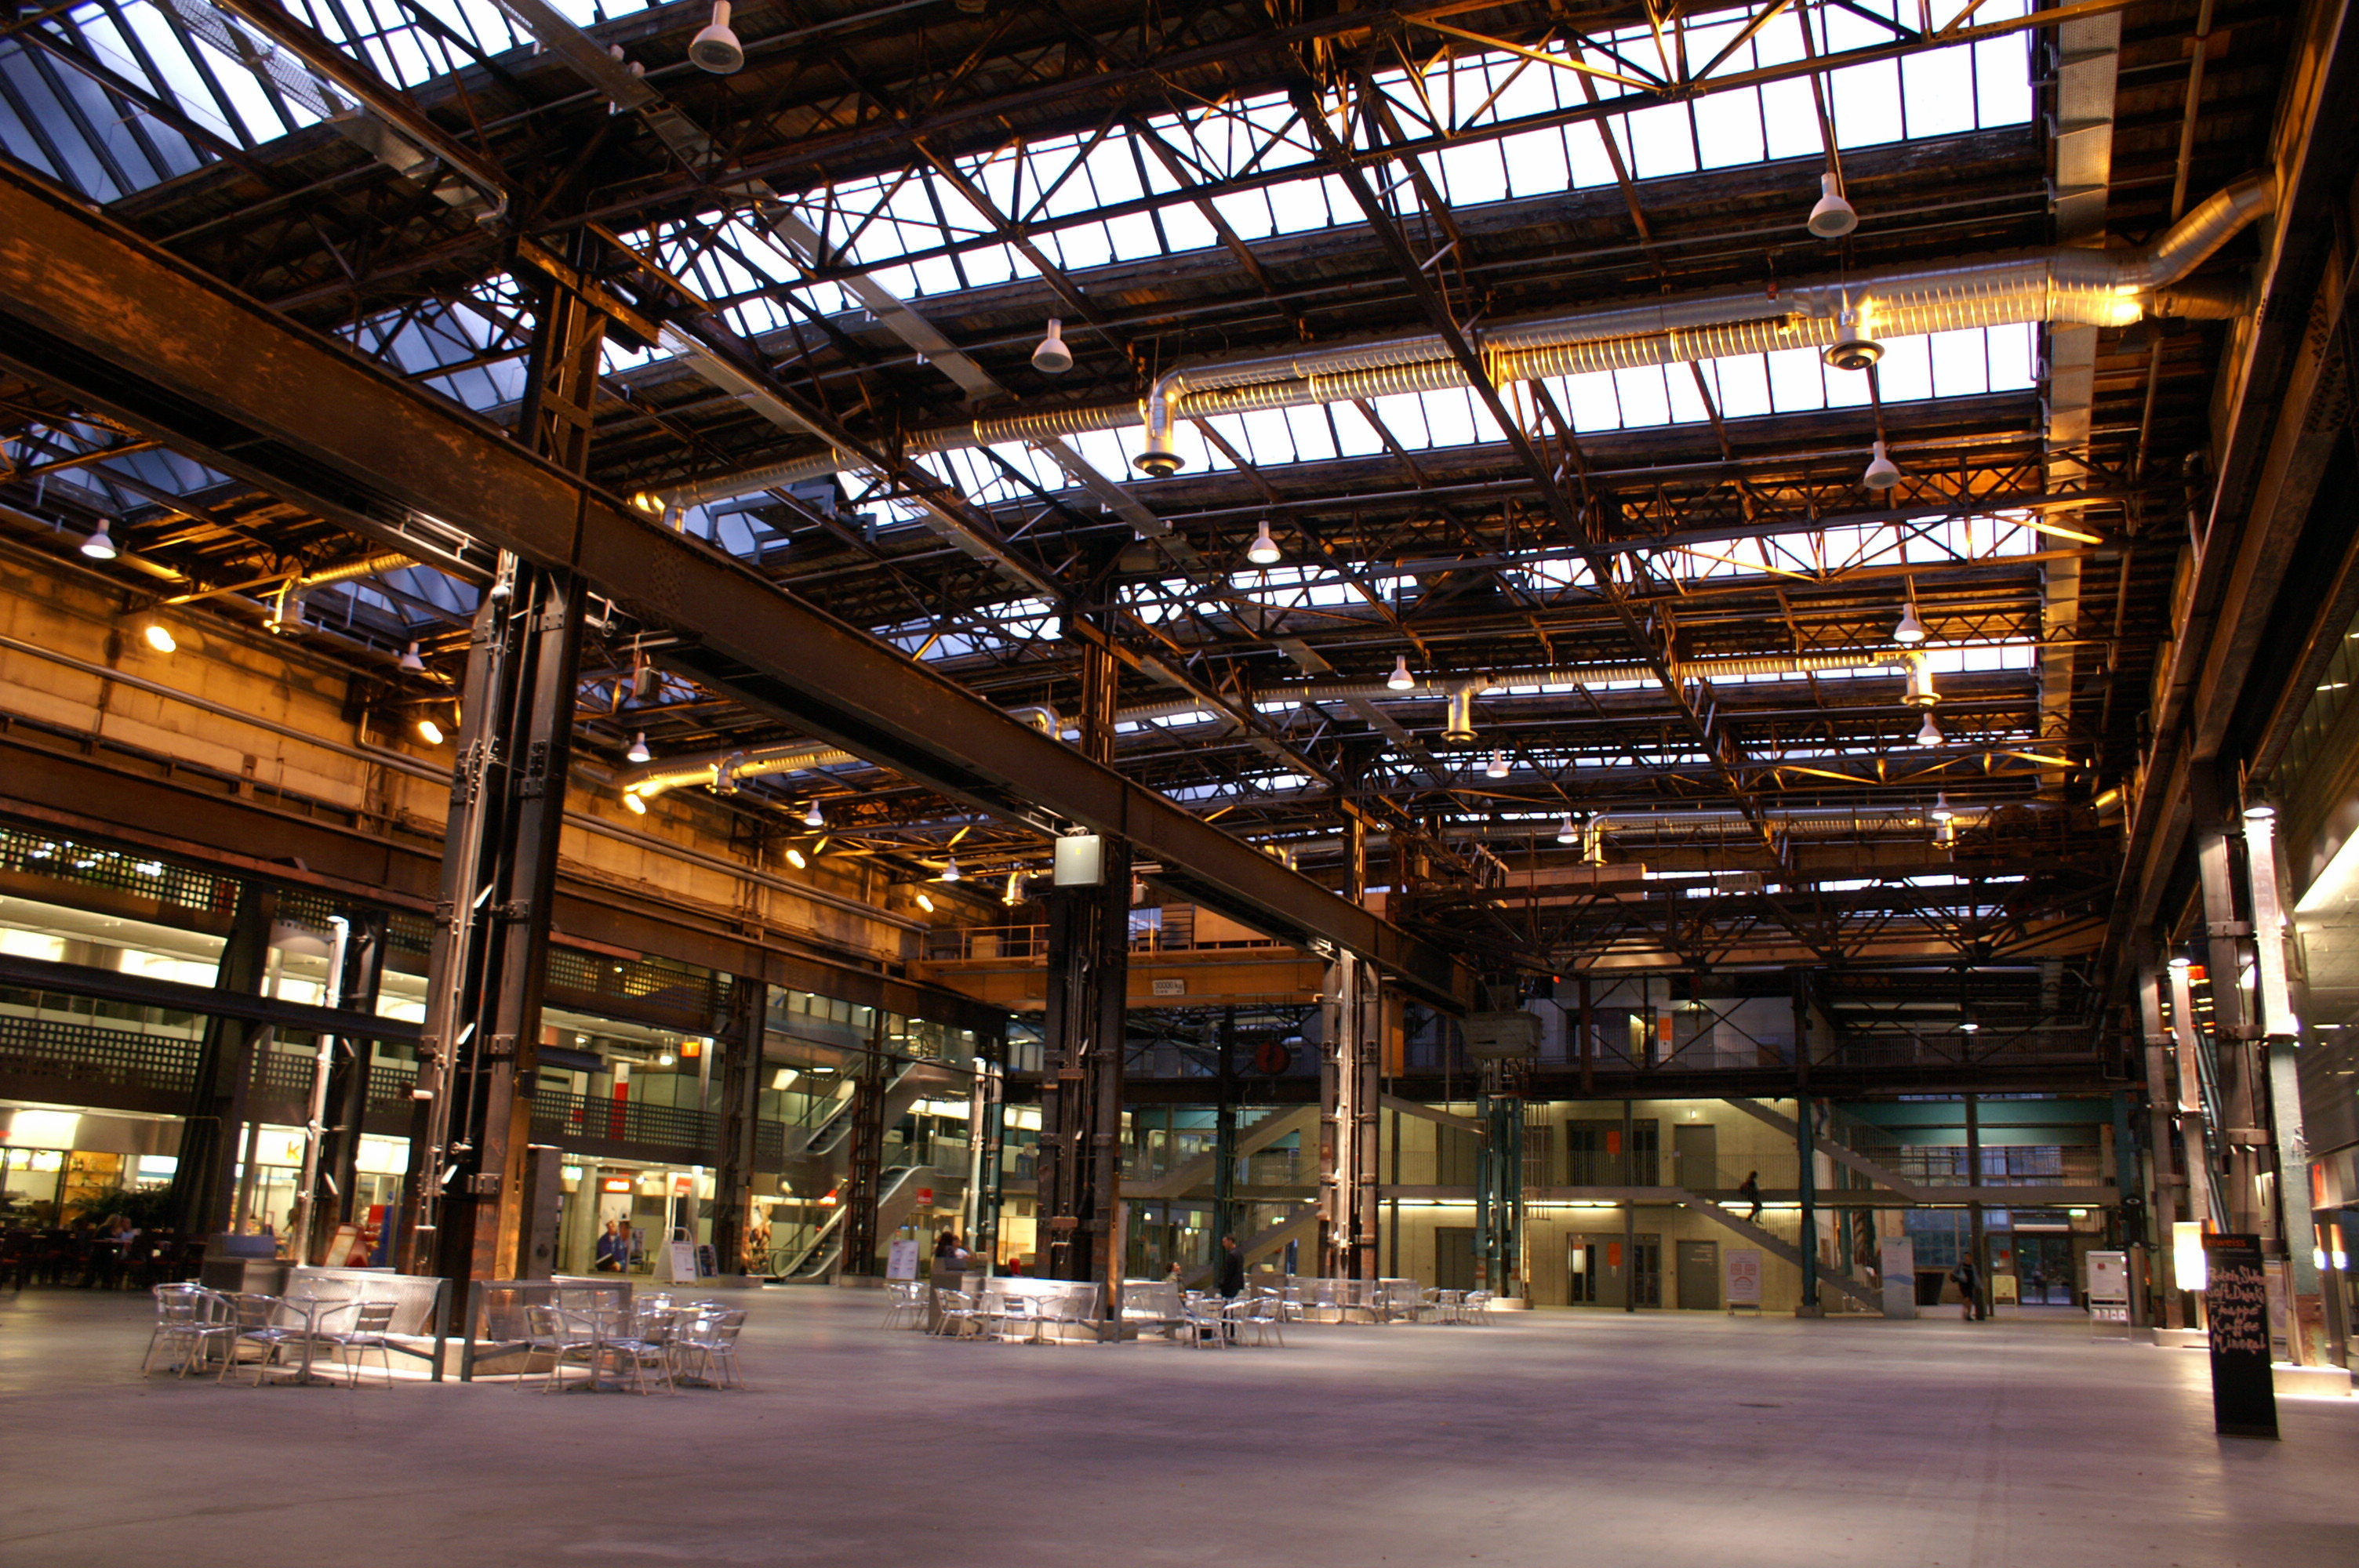 View of the Interior of Puls5 Industrial Hall in Zurich's West End